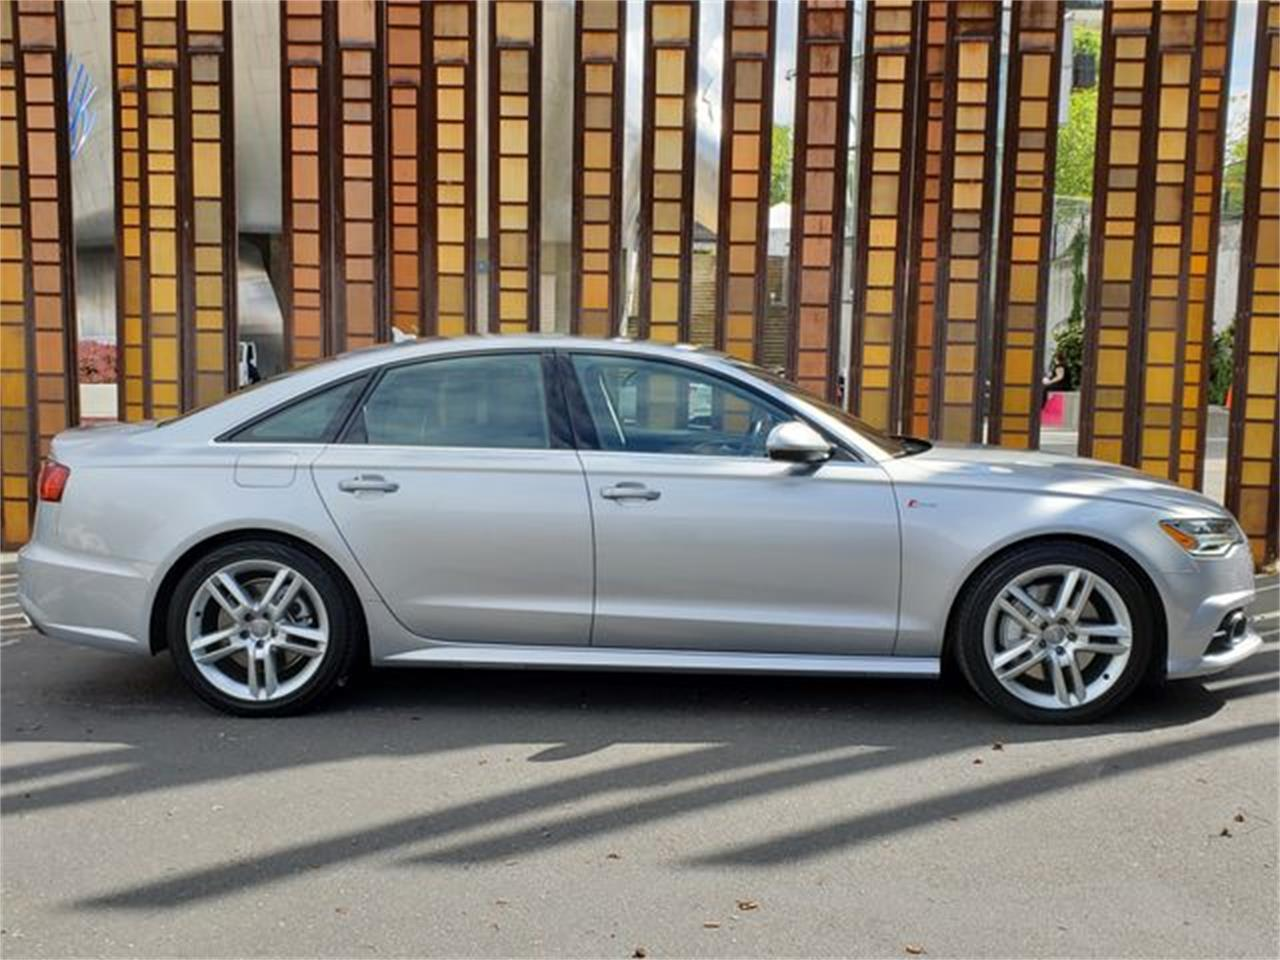 2016 Audi A6 for sale in Seattle, WA – photo 7